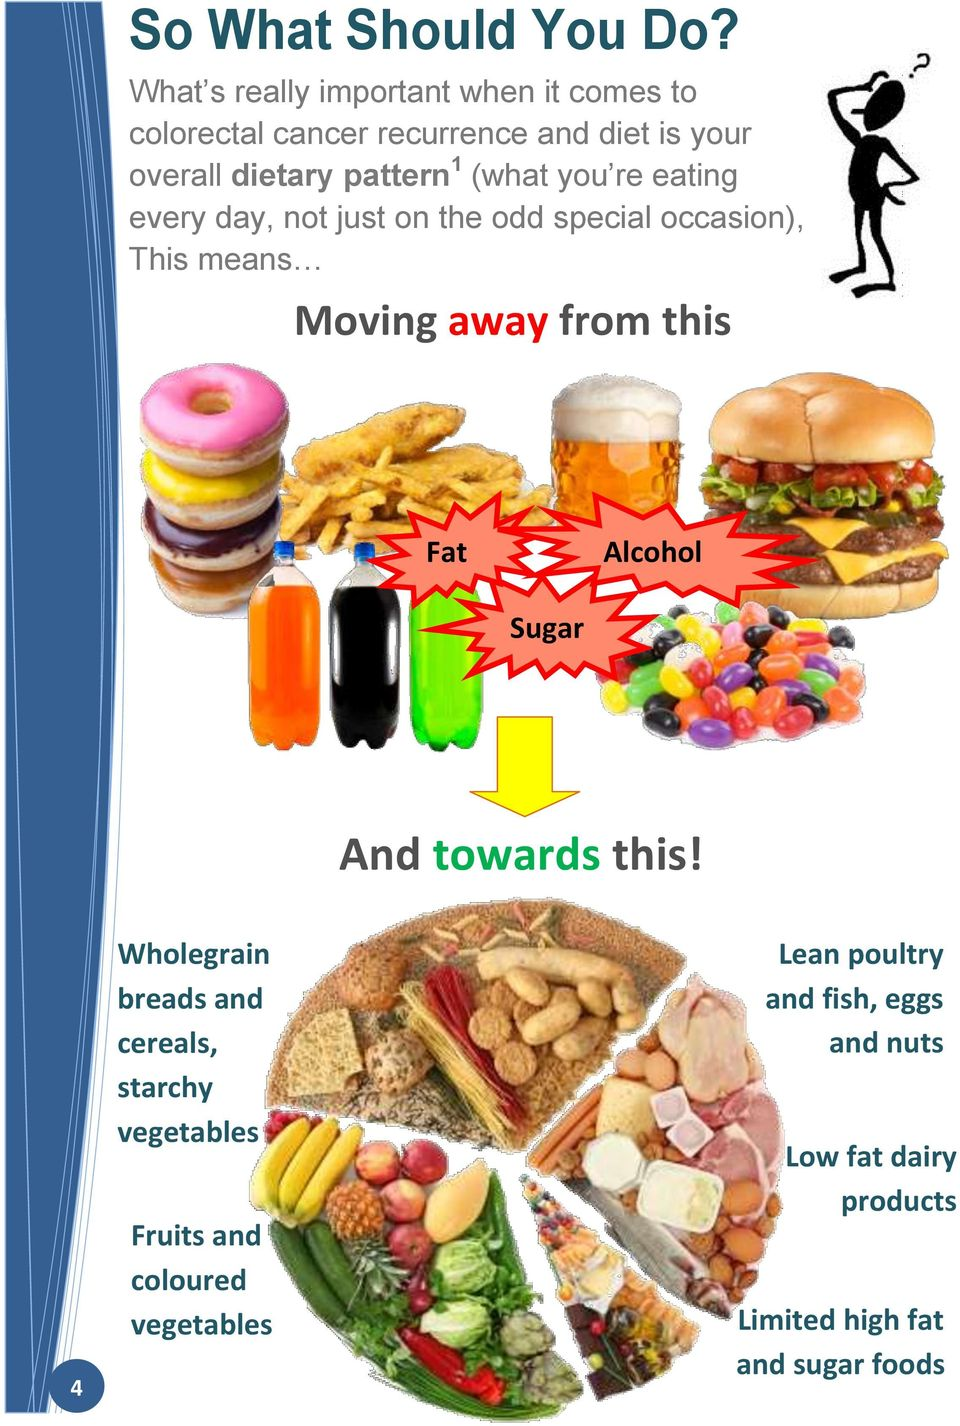 (what you re eating every day, not just on the odd special occasion), This means Moving away from this Fat